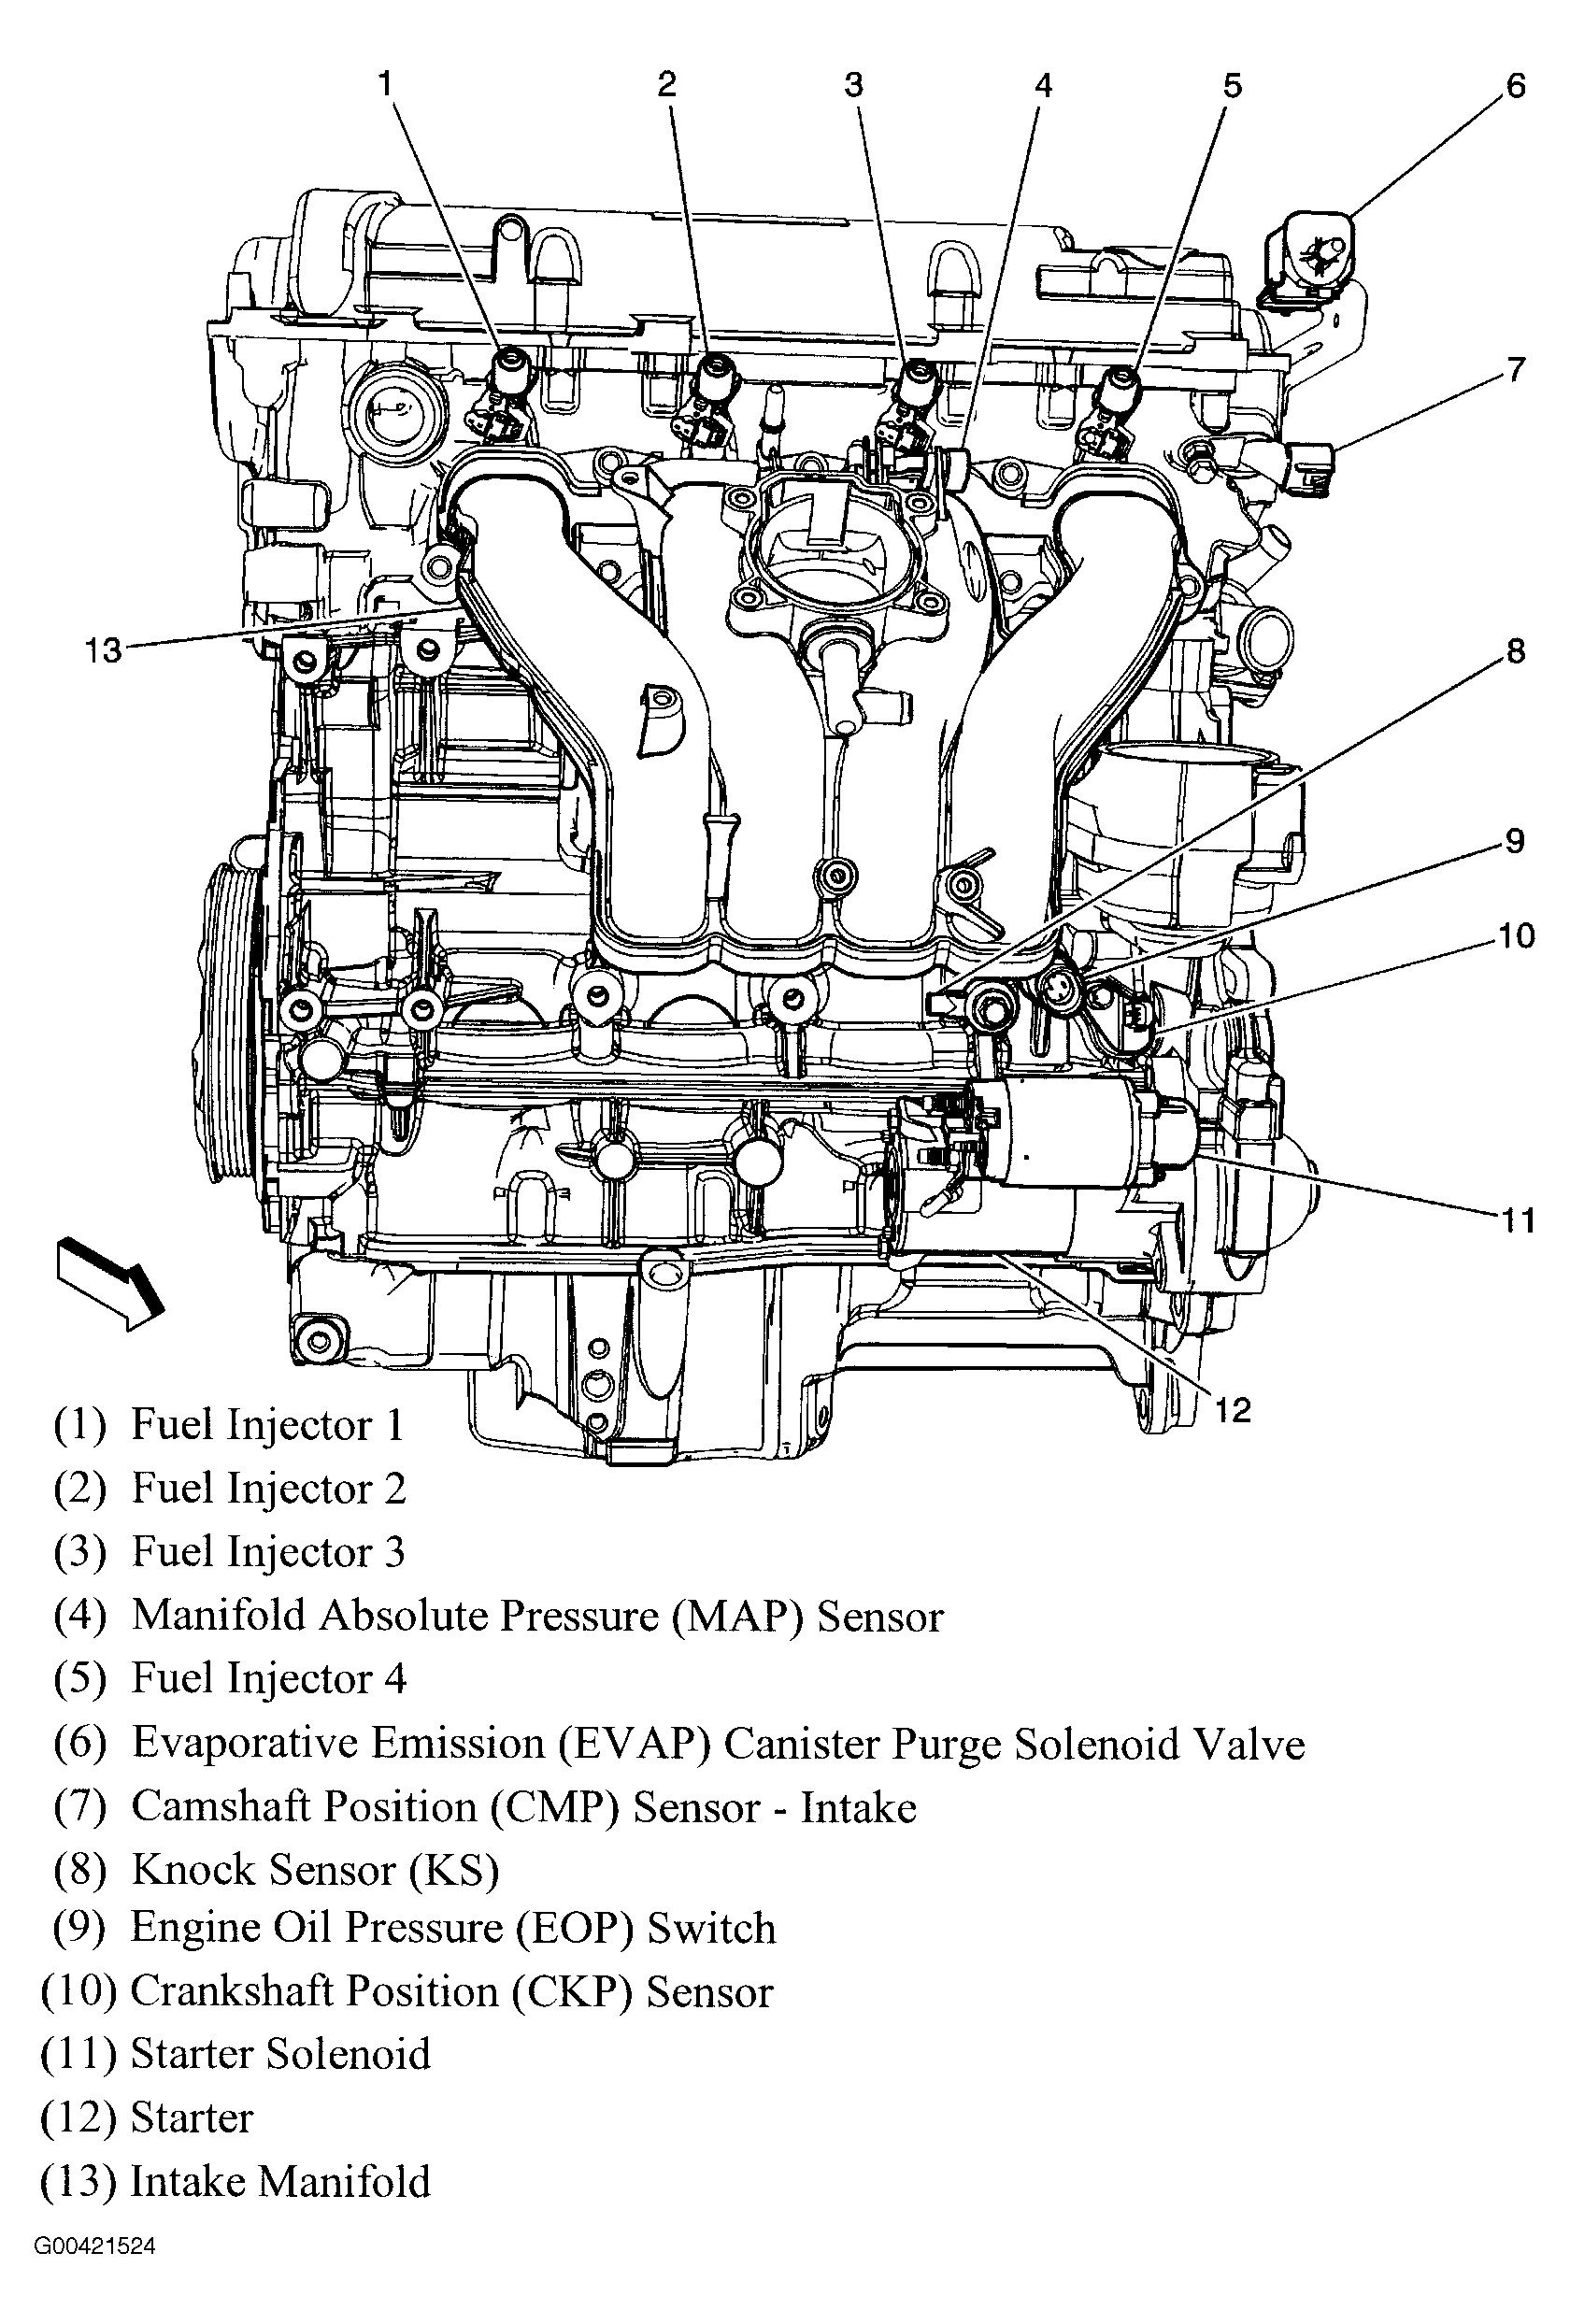 2014 chevy cruze fuse diagram 2014 chevy cruze outside temp sensor wiring diagram 2009 chevrolet hhr crankshaft sensor i need to find out #12